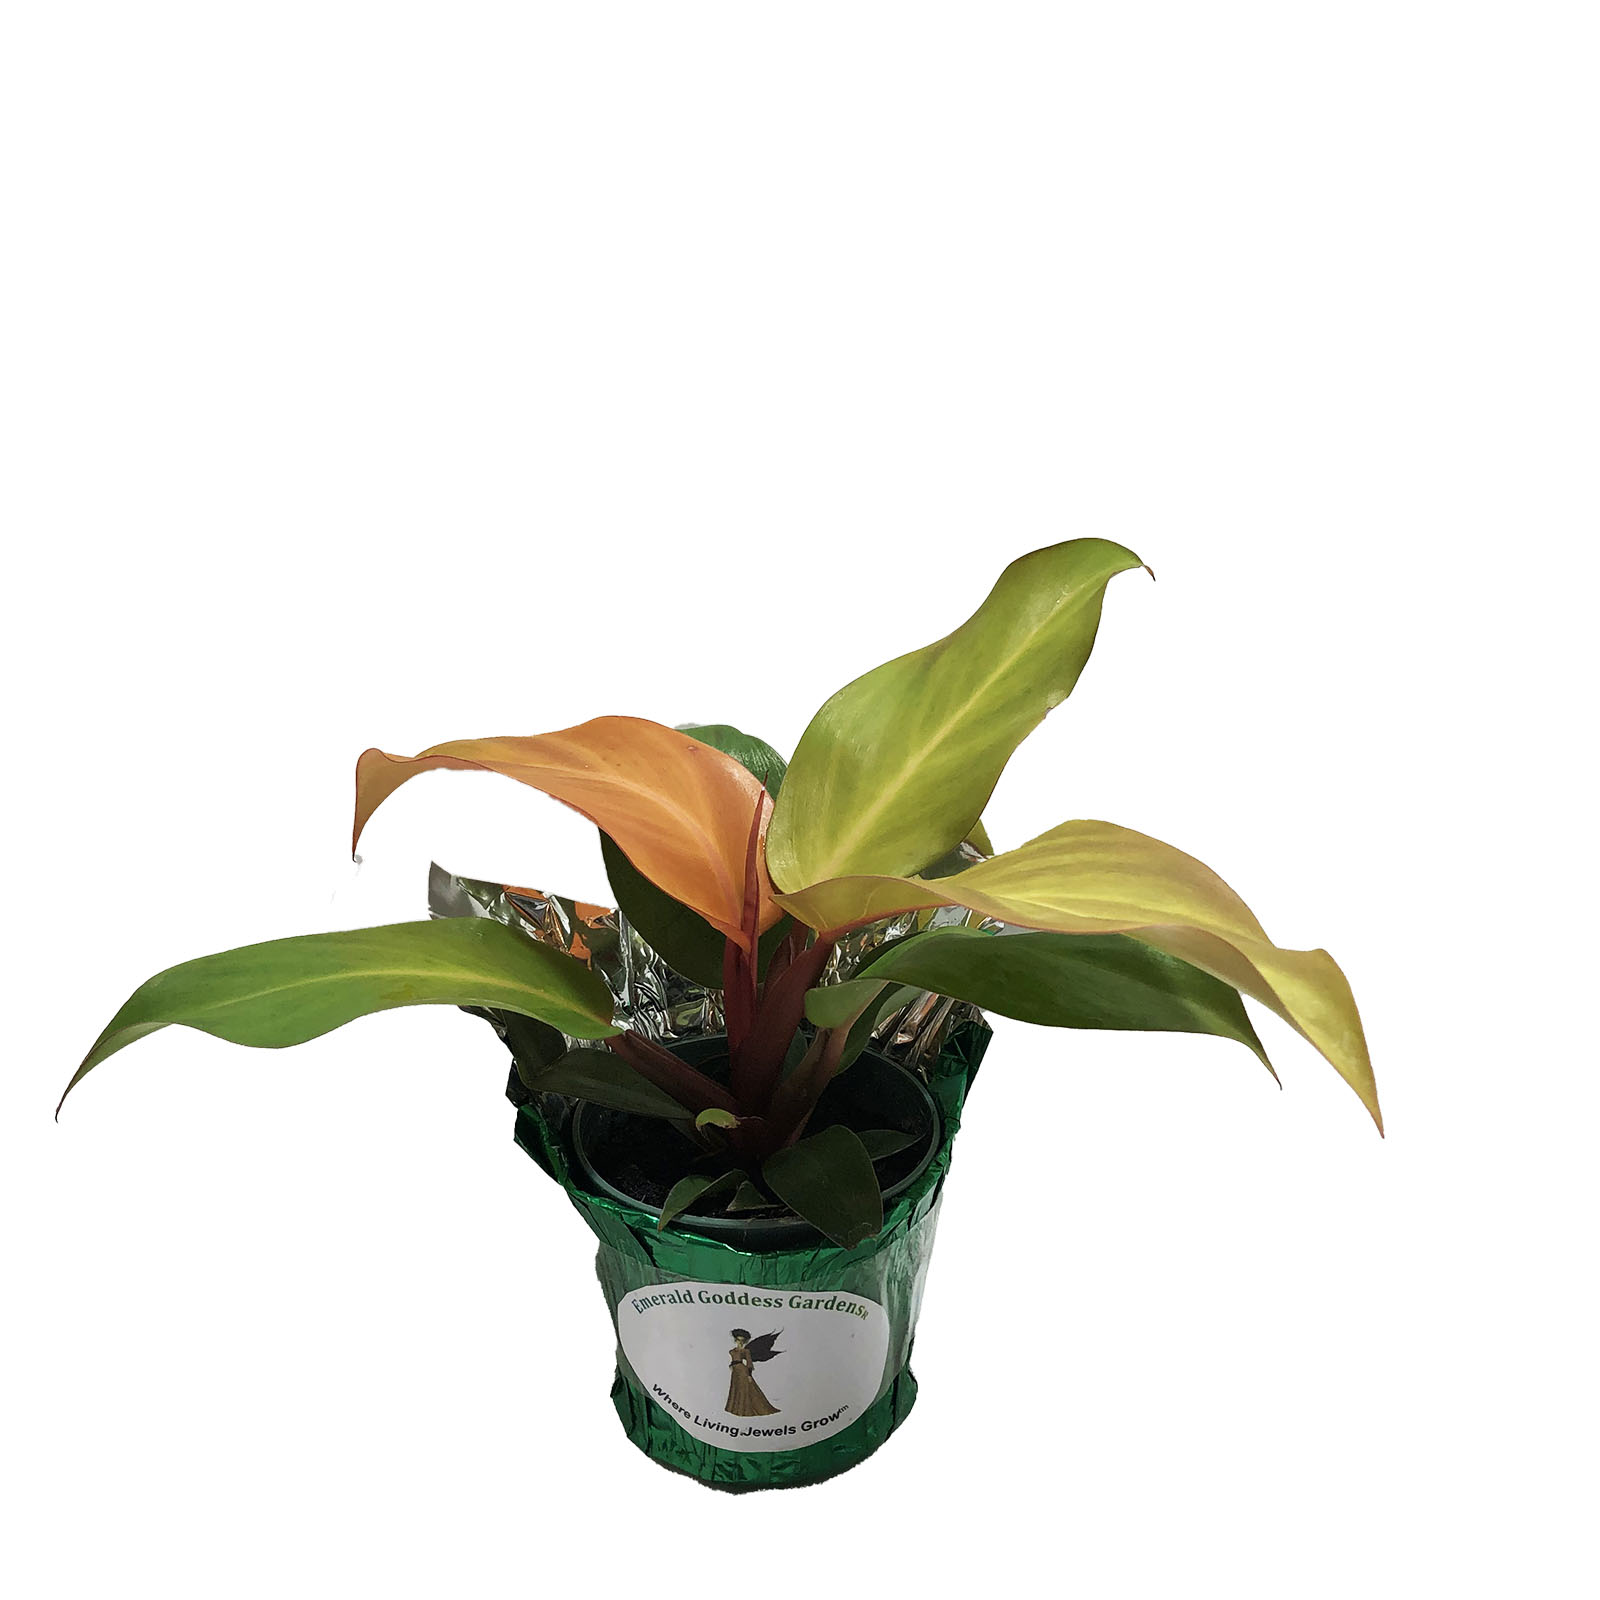 Philodendron MCCOLLEYS FINALE Tropical Live Plant Starter Size Orange Peach Leaf Houseplant Indoor Outdoor Shade Garden 4 Inch Pot Emerald R - Click Image to Close